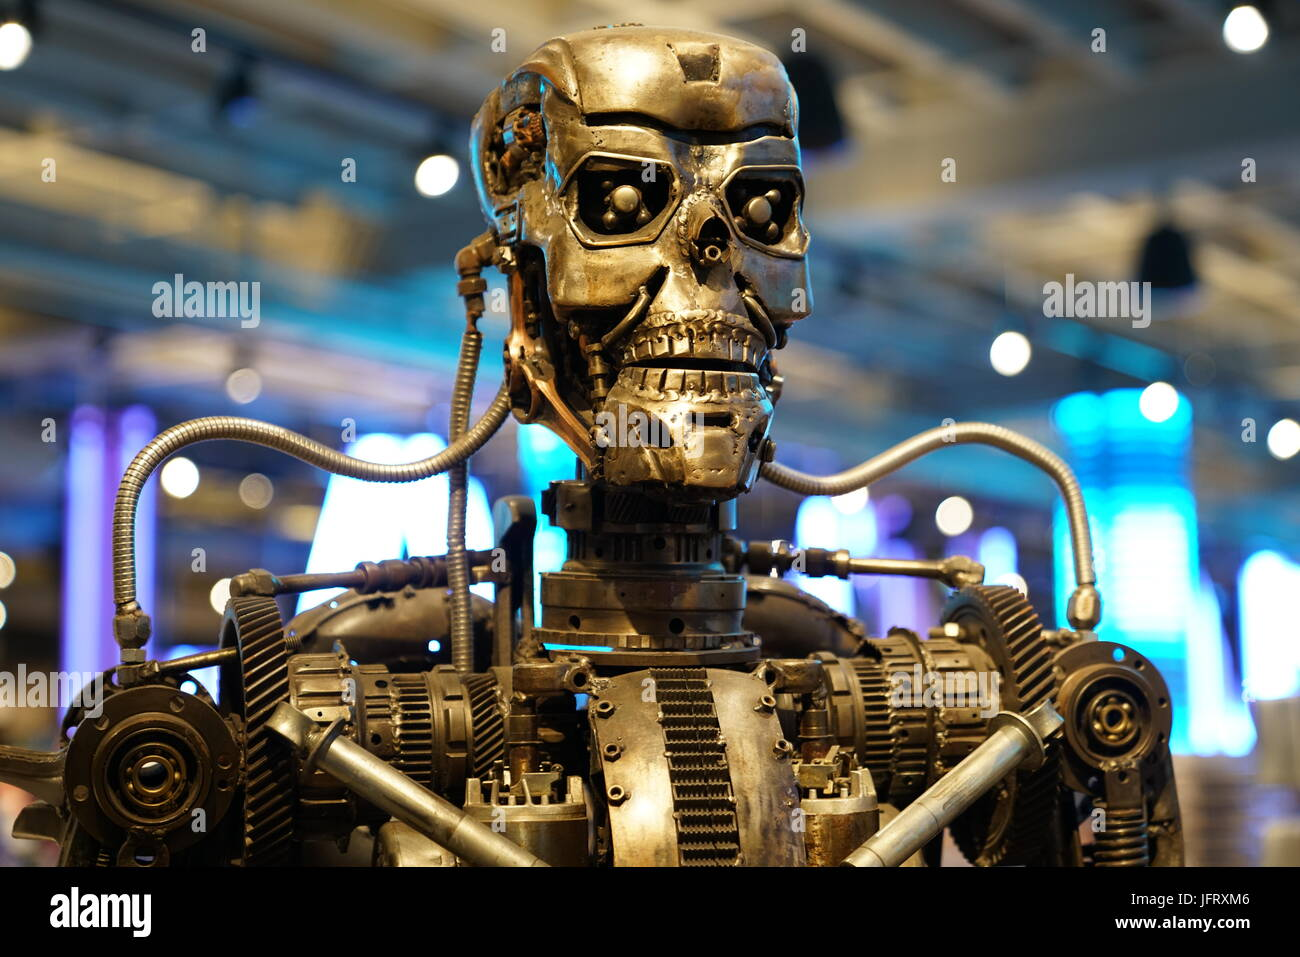 Los Angeles, California, USA - JUNE 25, 2017: Cyberdyne Systems Model 101 Series T-800 Terminator metal endoskeleton - Stock Image